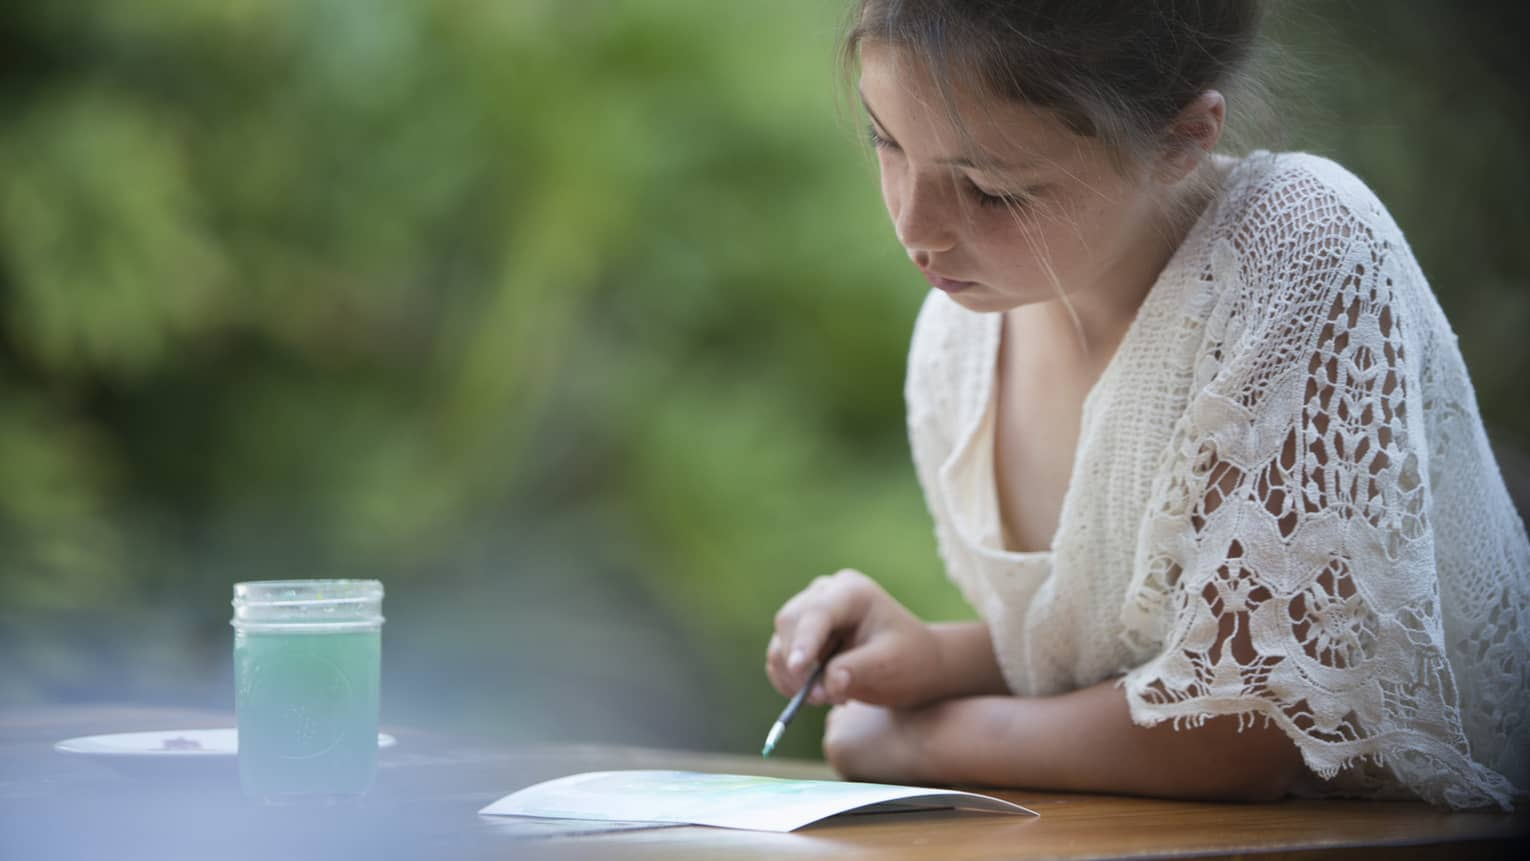 Girl painting on a piece of paper, a glass of blue-colored water next to her, trees in background